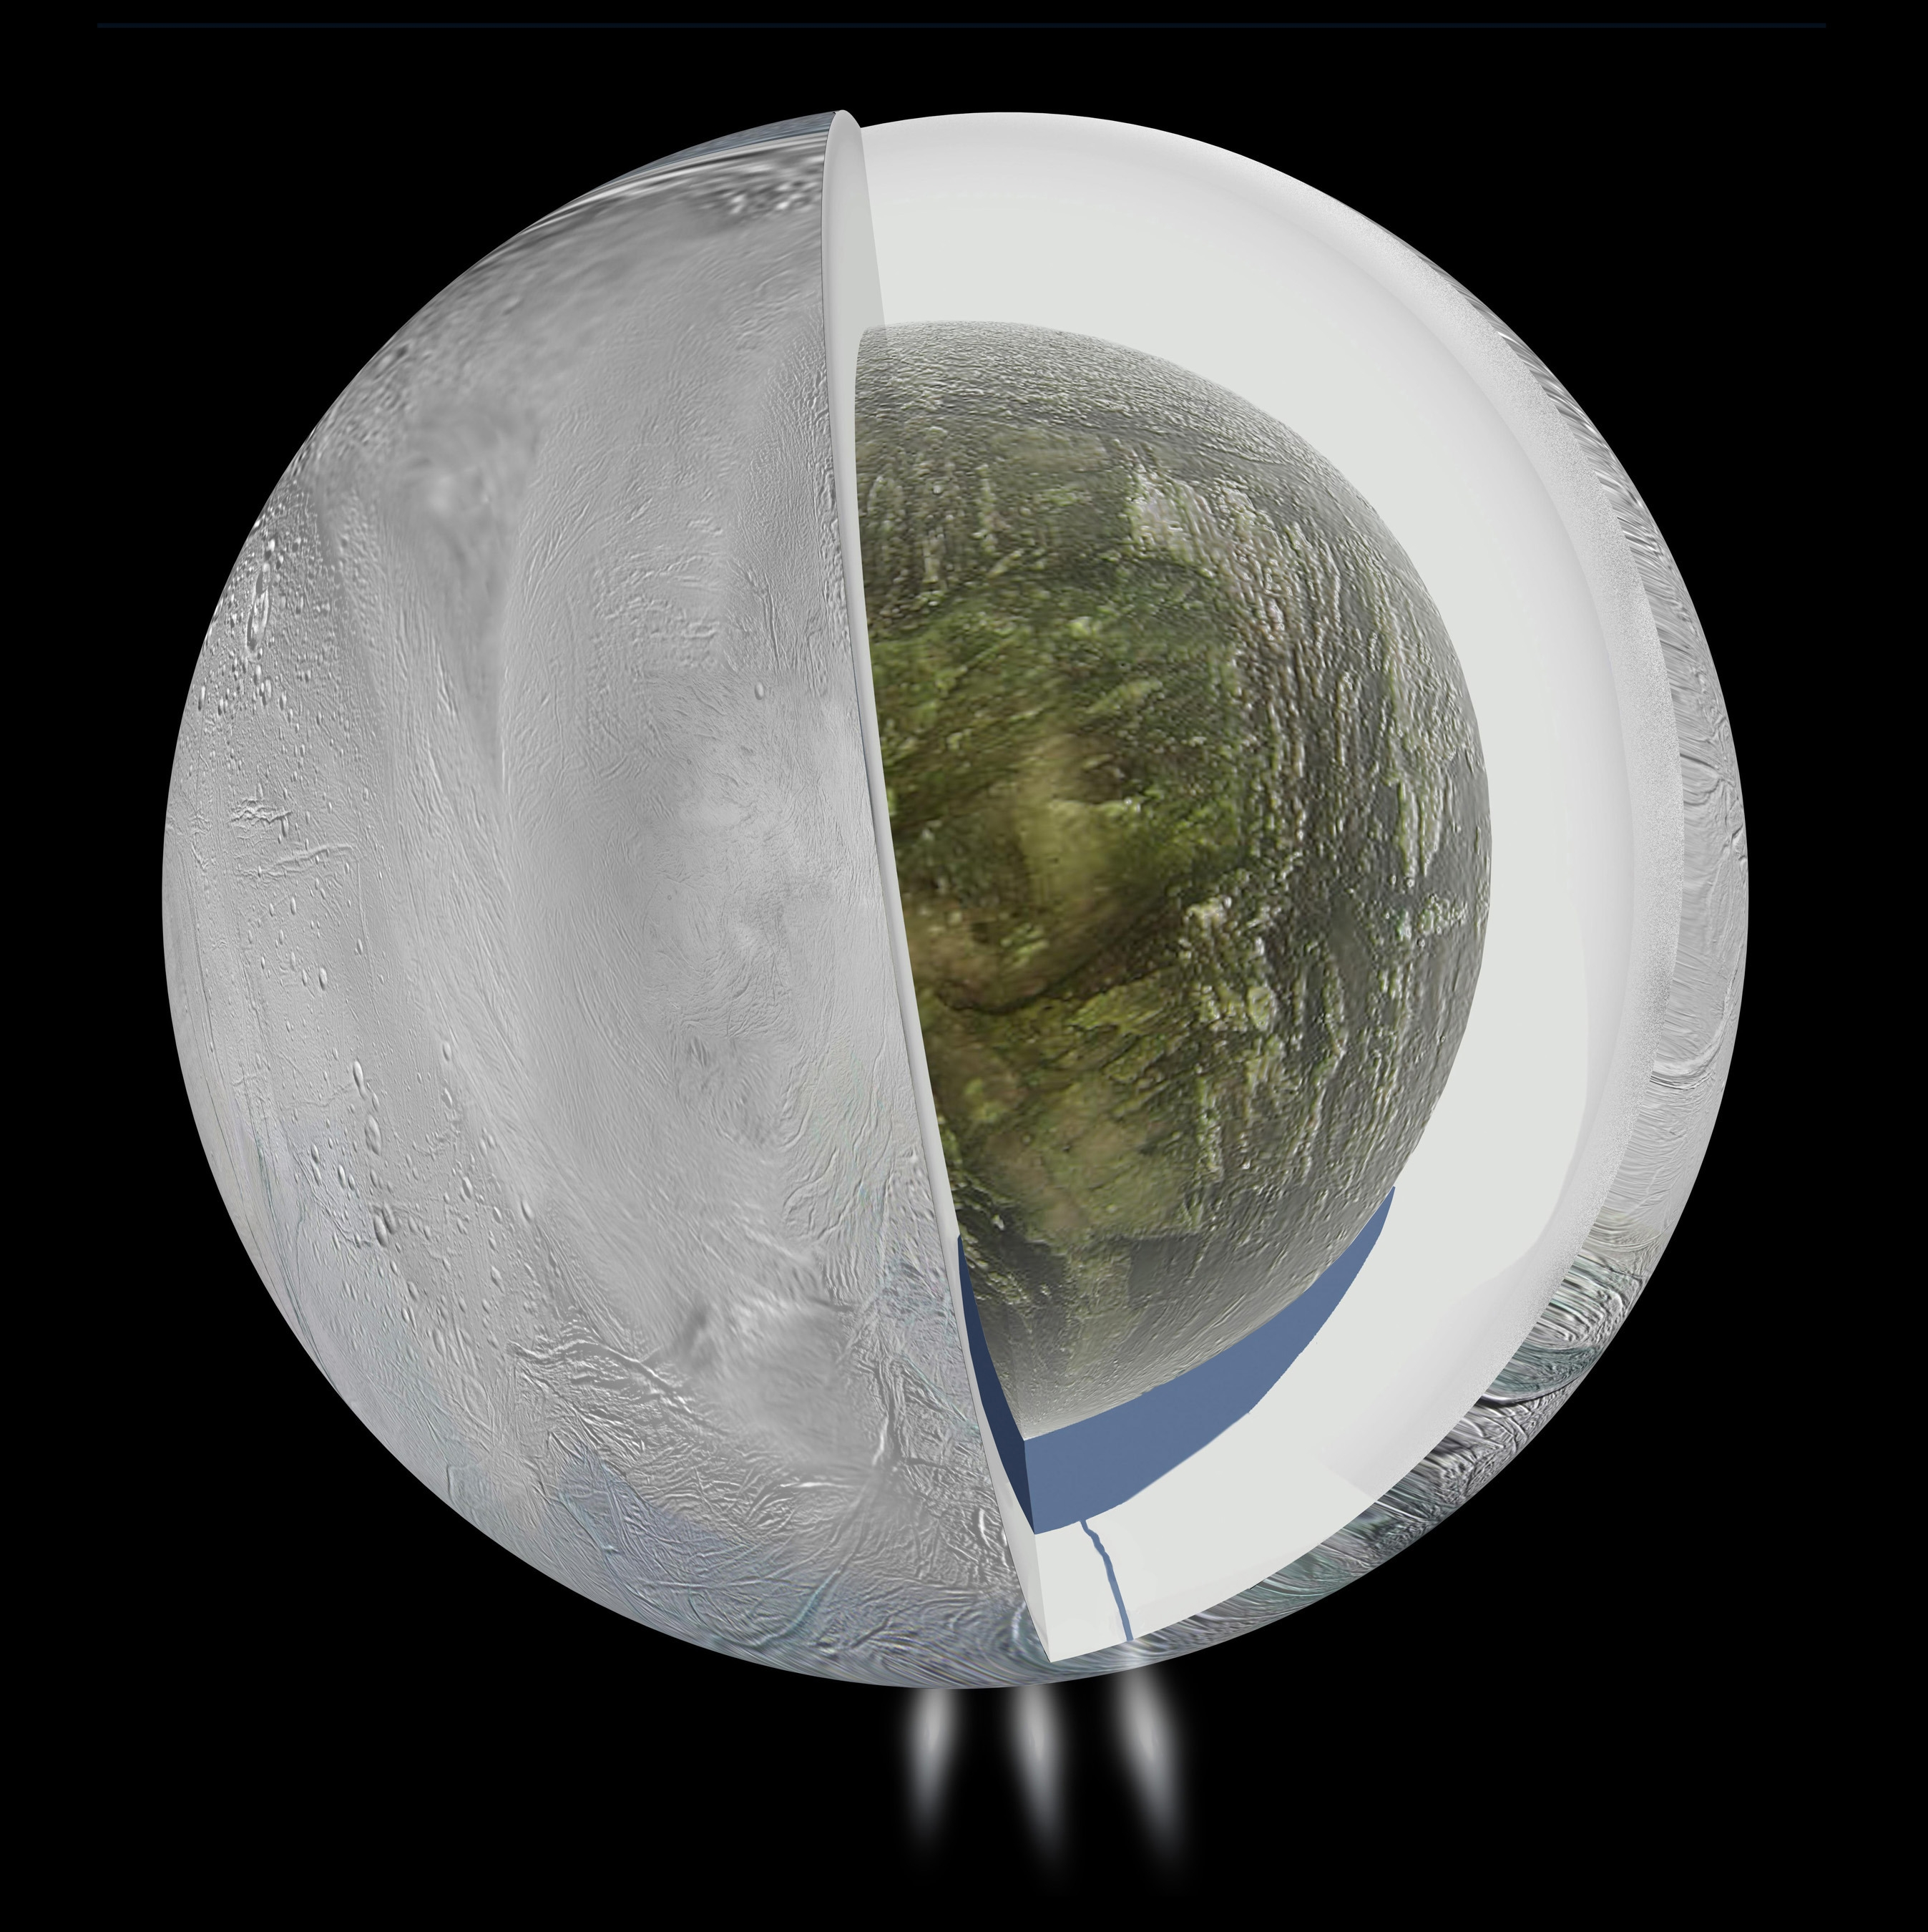 NASA theorizes that Saturn's moon, Enceladus, has an icy outer shell, watery interior and a rocky core.